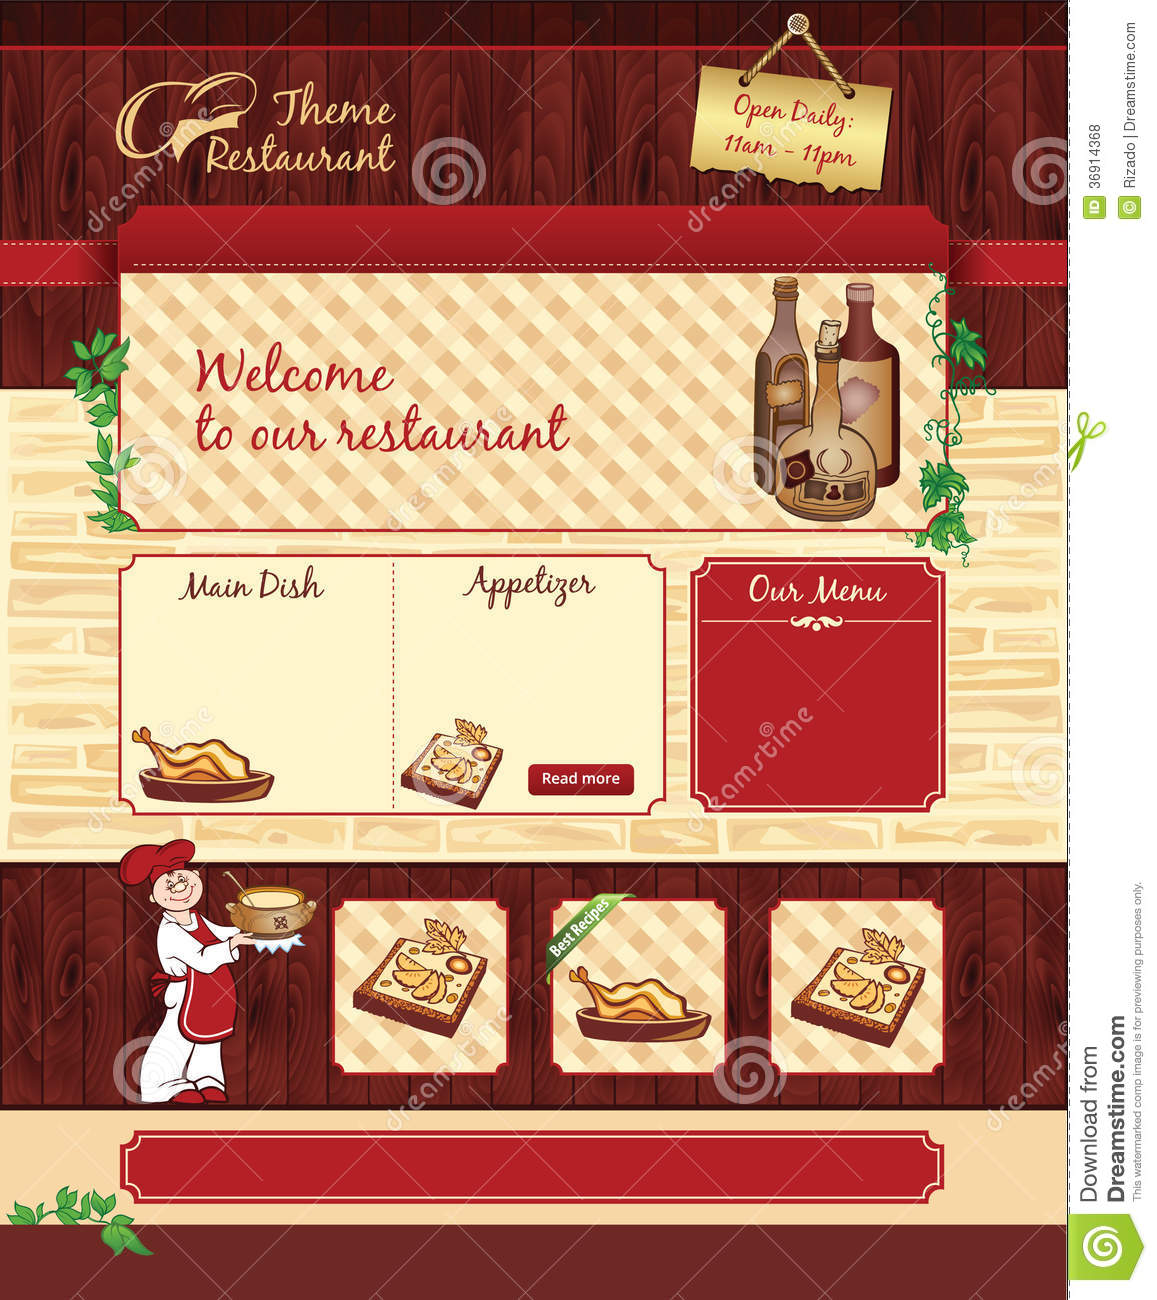 Web Template For Retro Restaurant Or Cafe Stock Vector